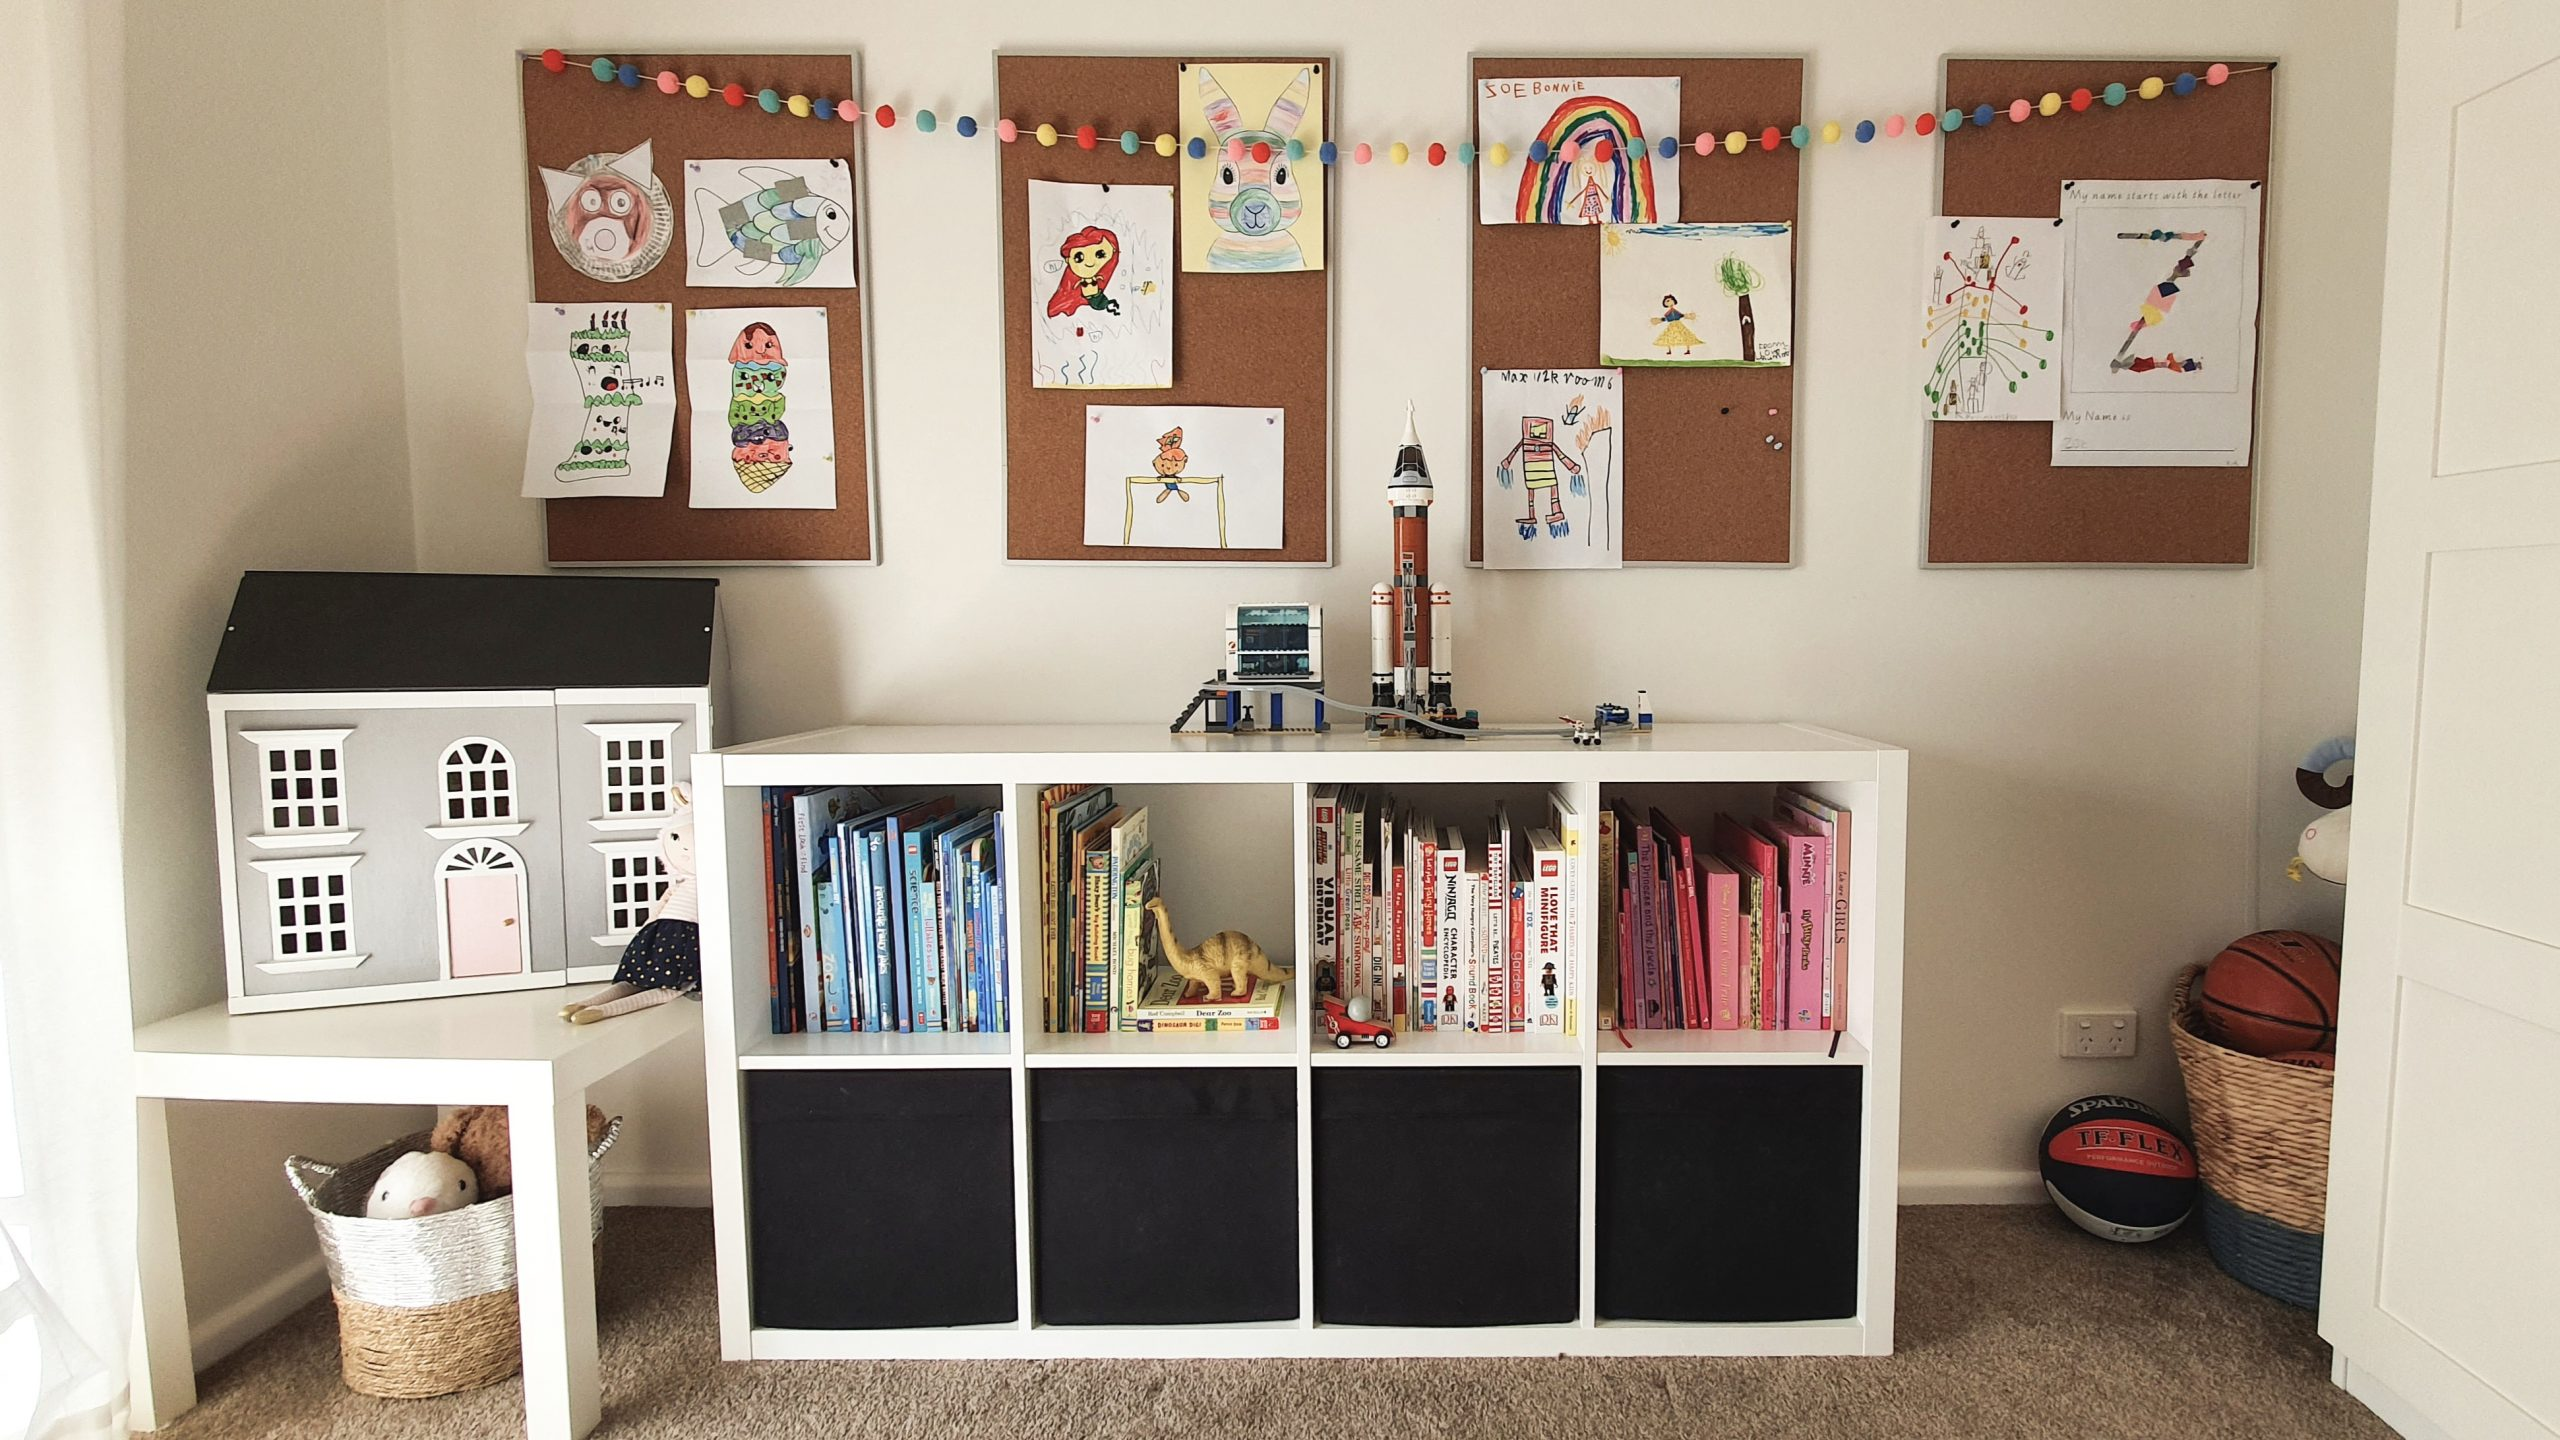 Our Little Playroom  -  Pax wardrobes and Kallax cube shelving toy storage. Pin board kid's artwork display.